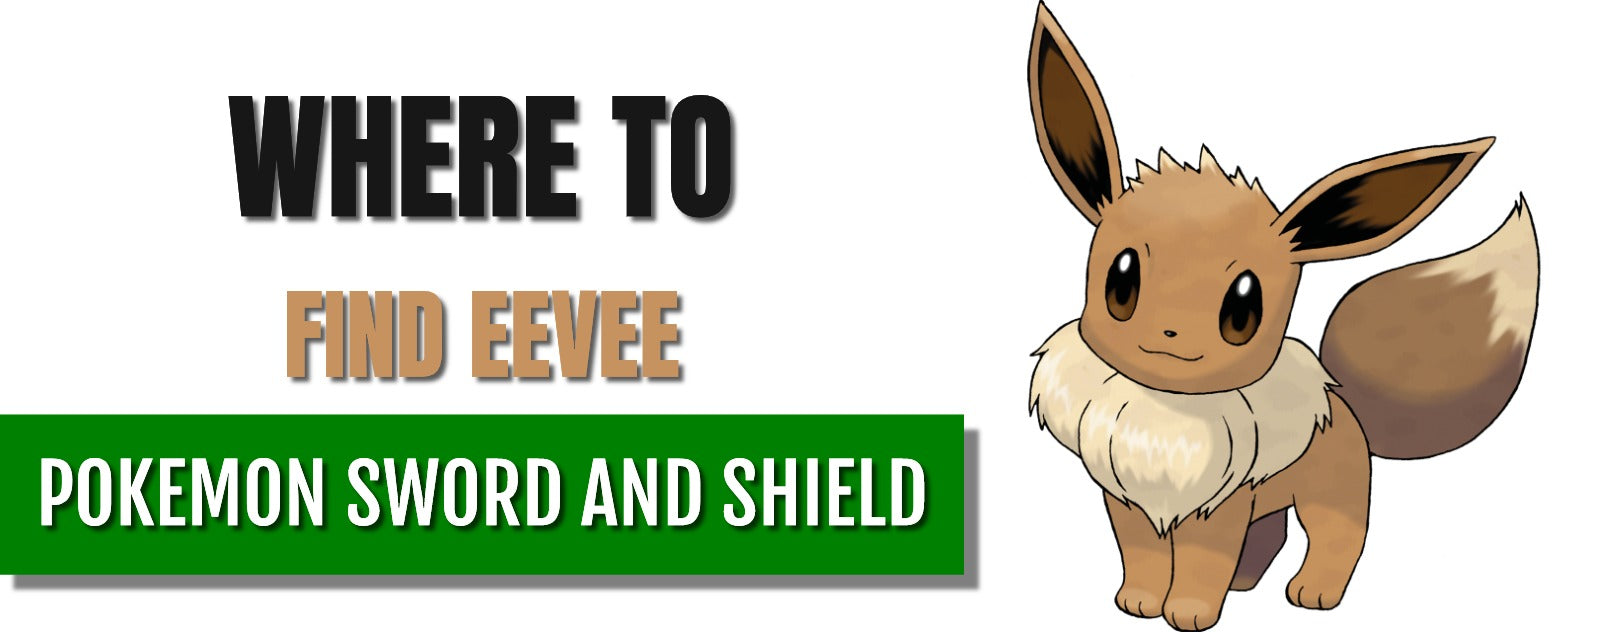 Where to find Eevee in Pokémon Sword and Shield